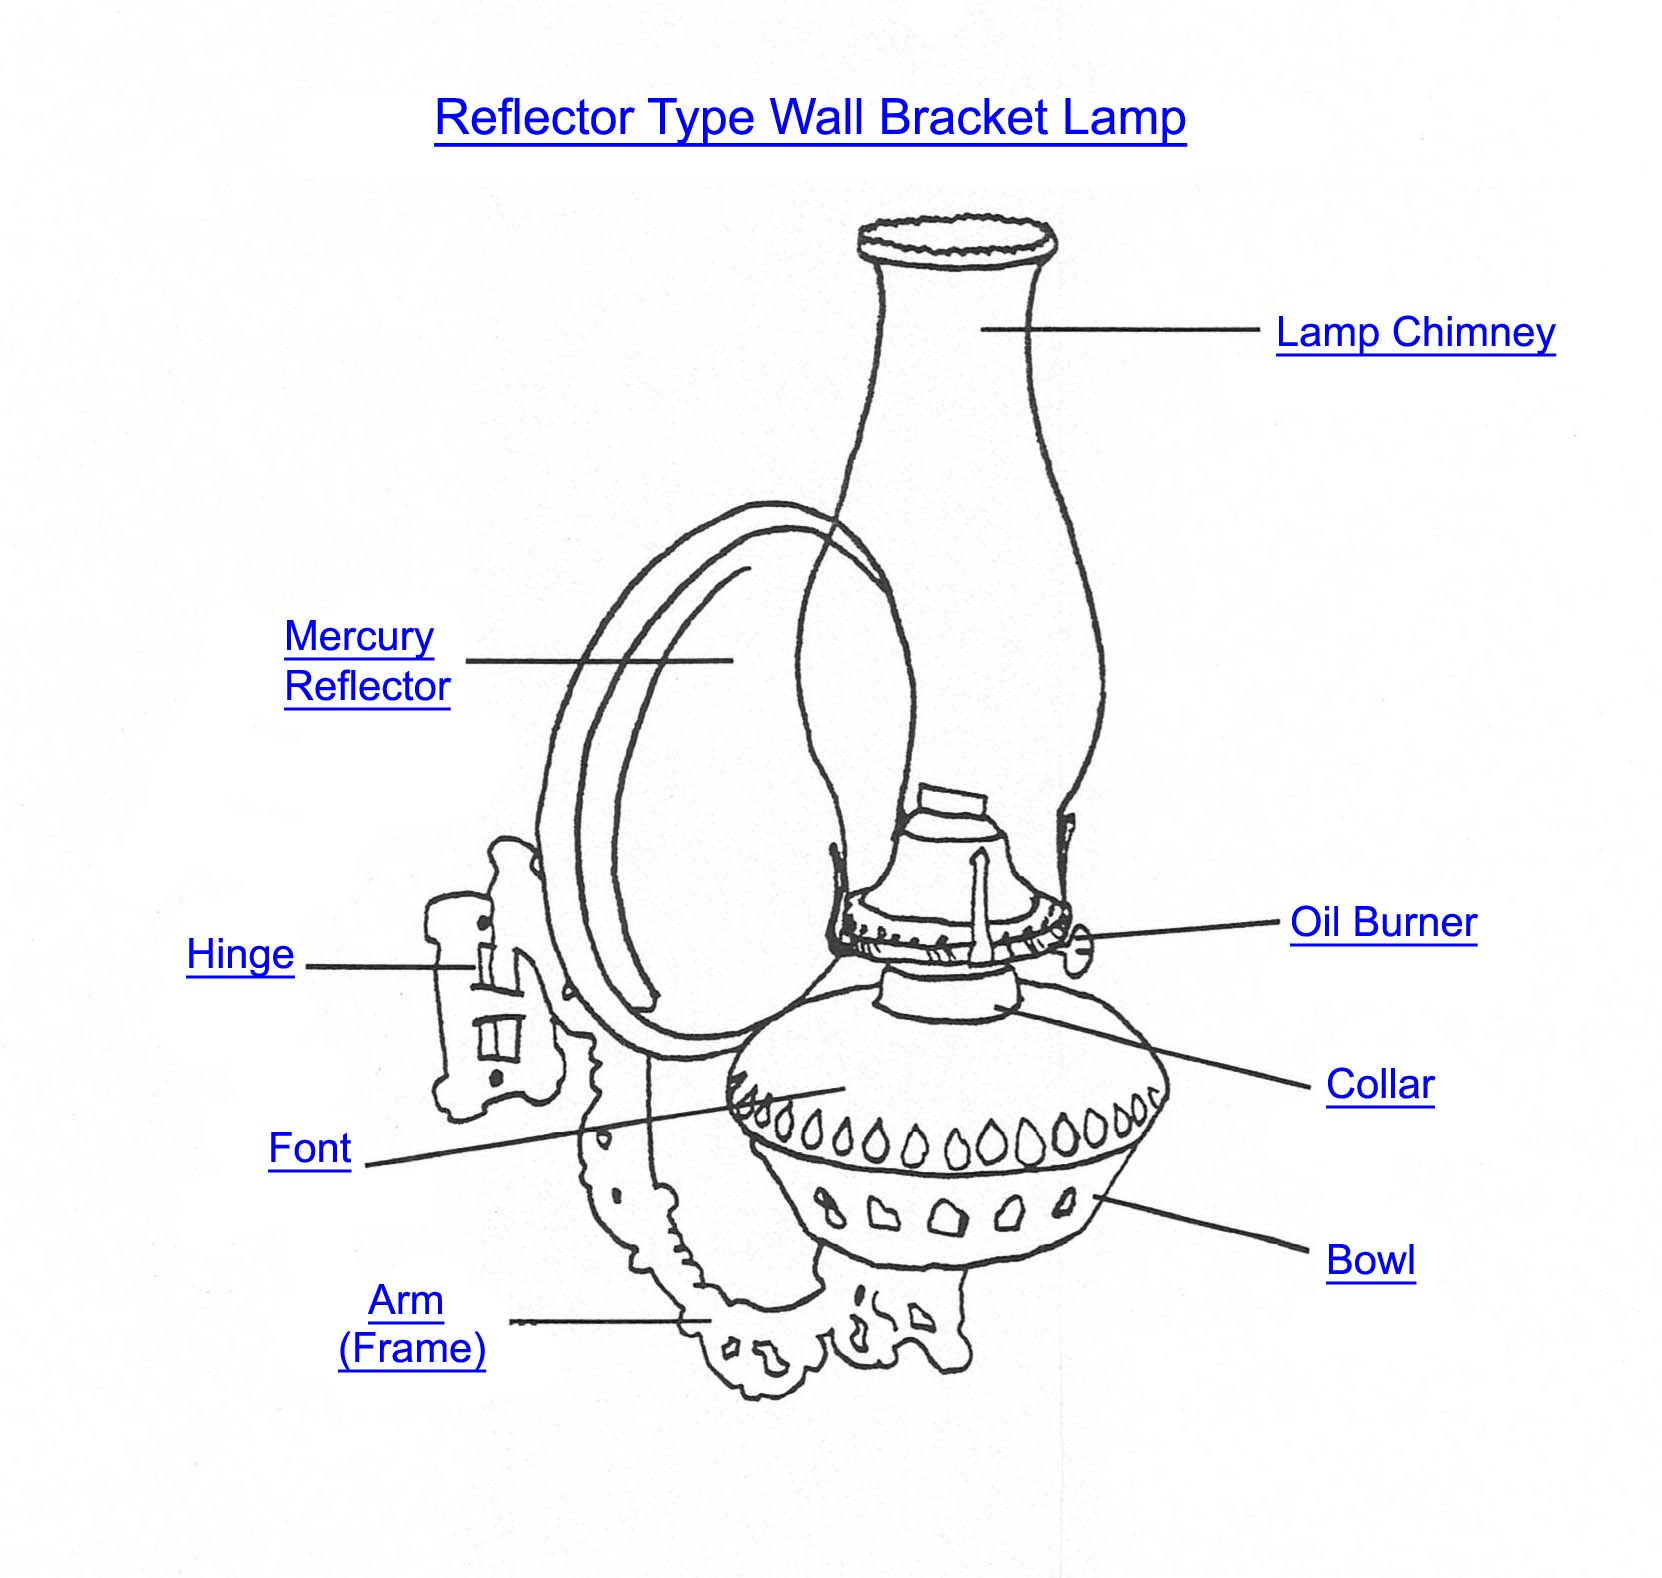 Reflector type wall bracket lamp part index mozeypictures Choice Image